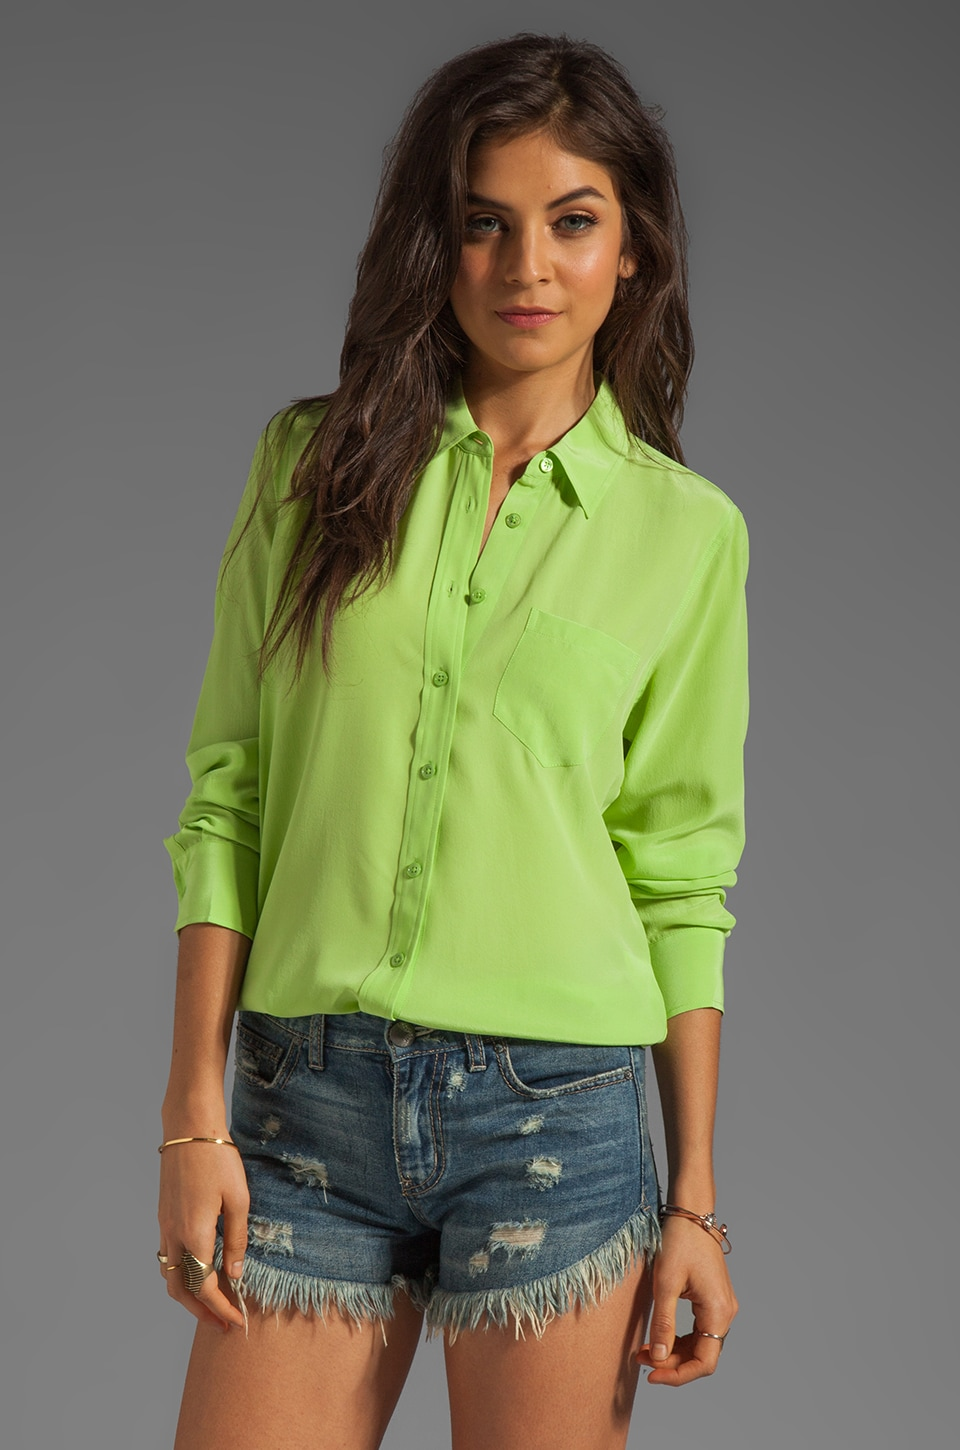 Equipment Brett Vintage Wash Blouse in Jade Lime